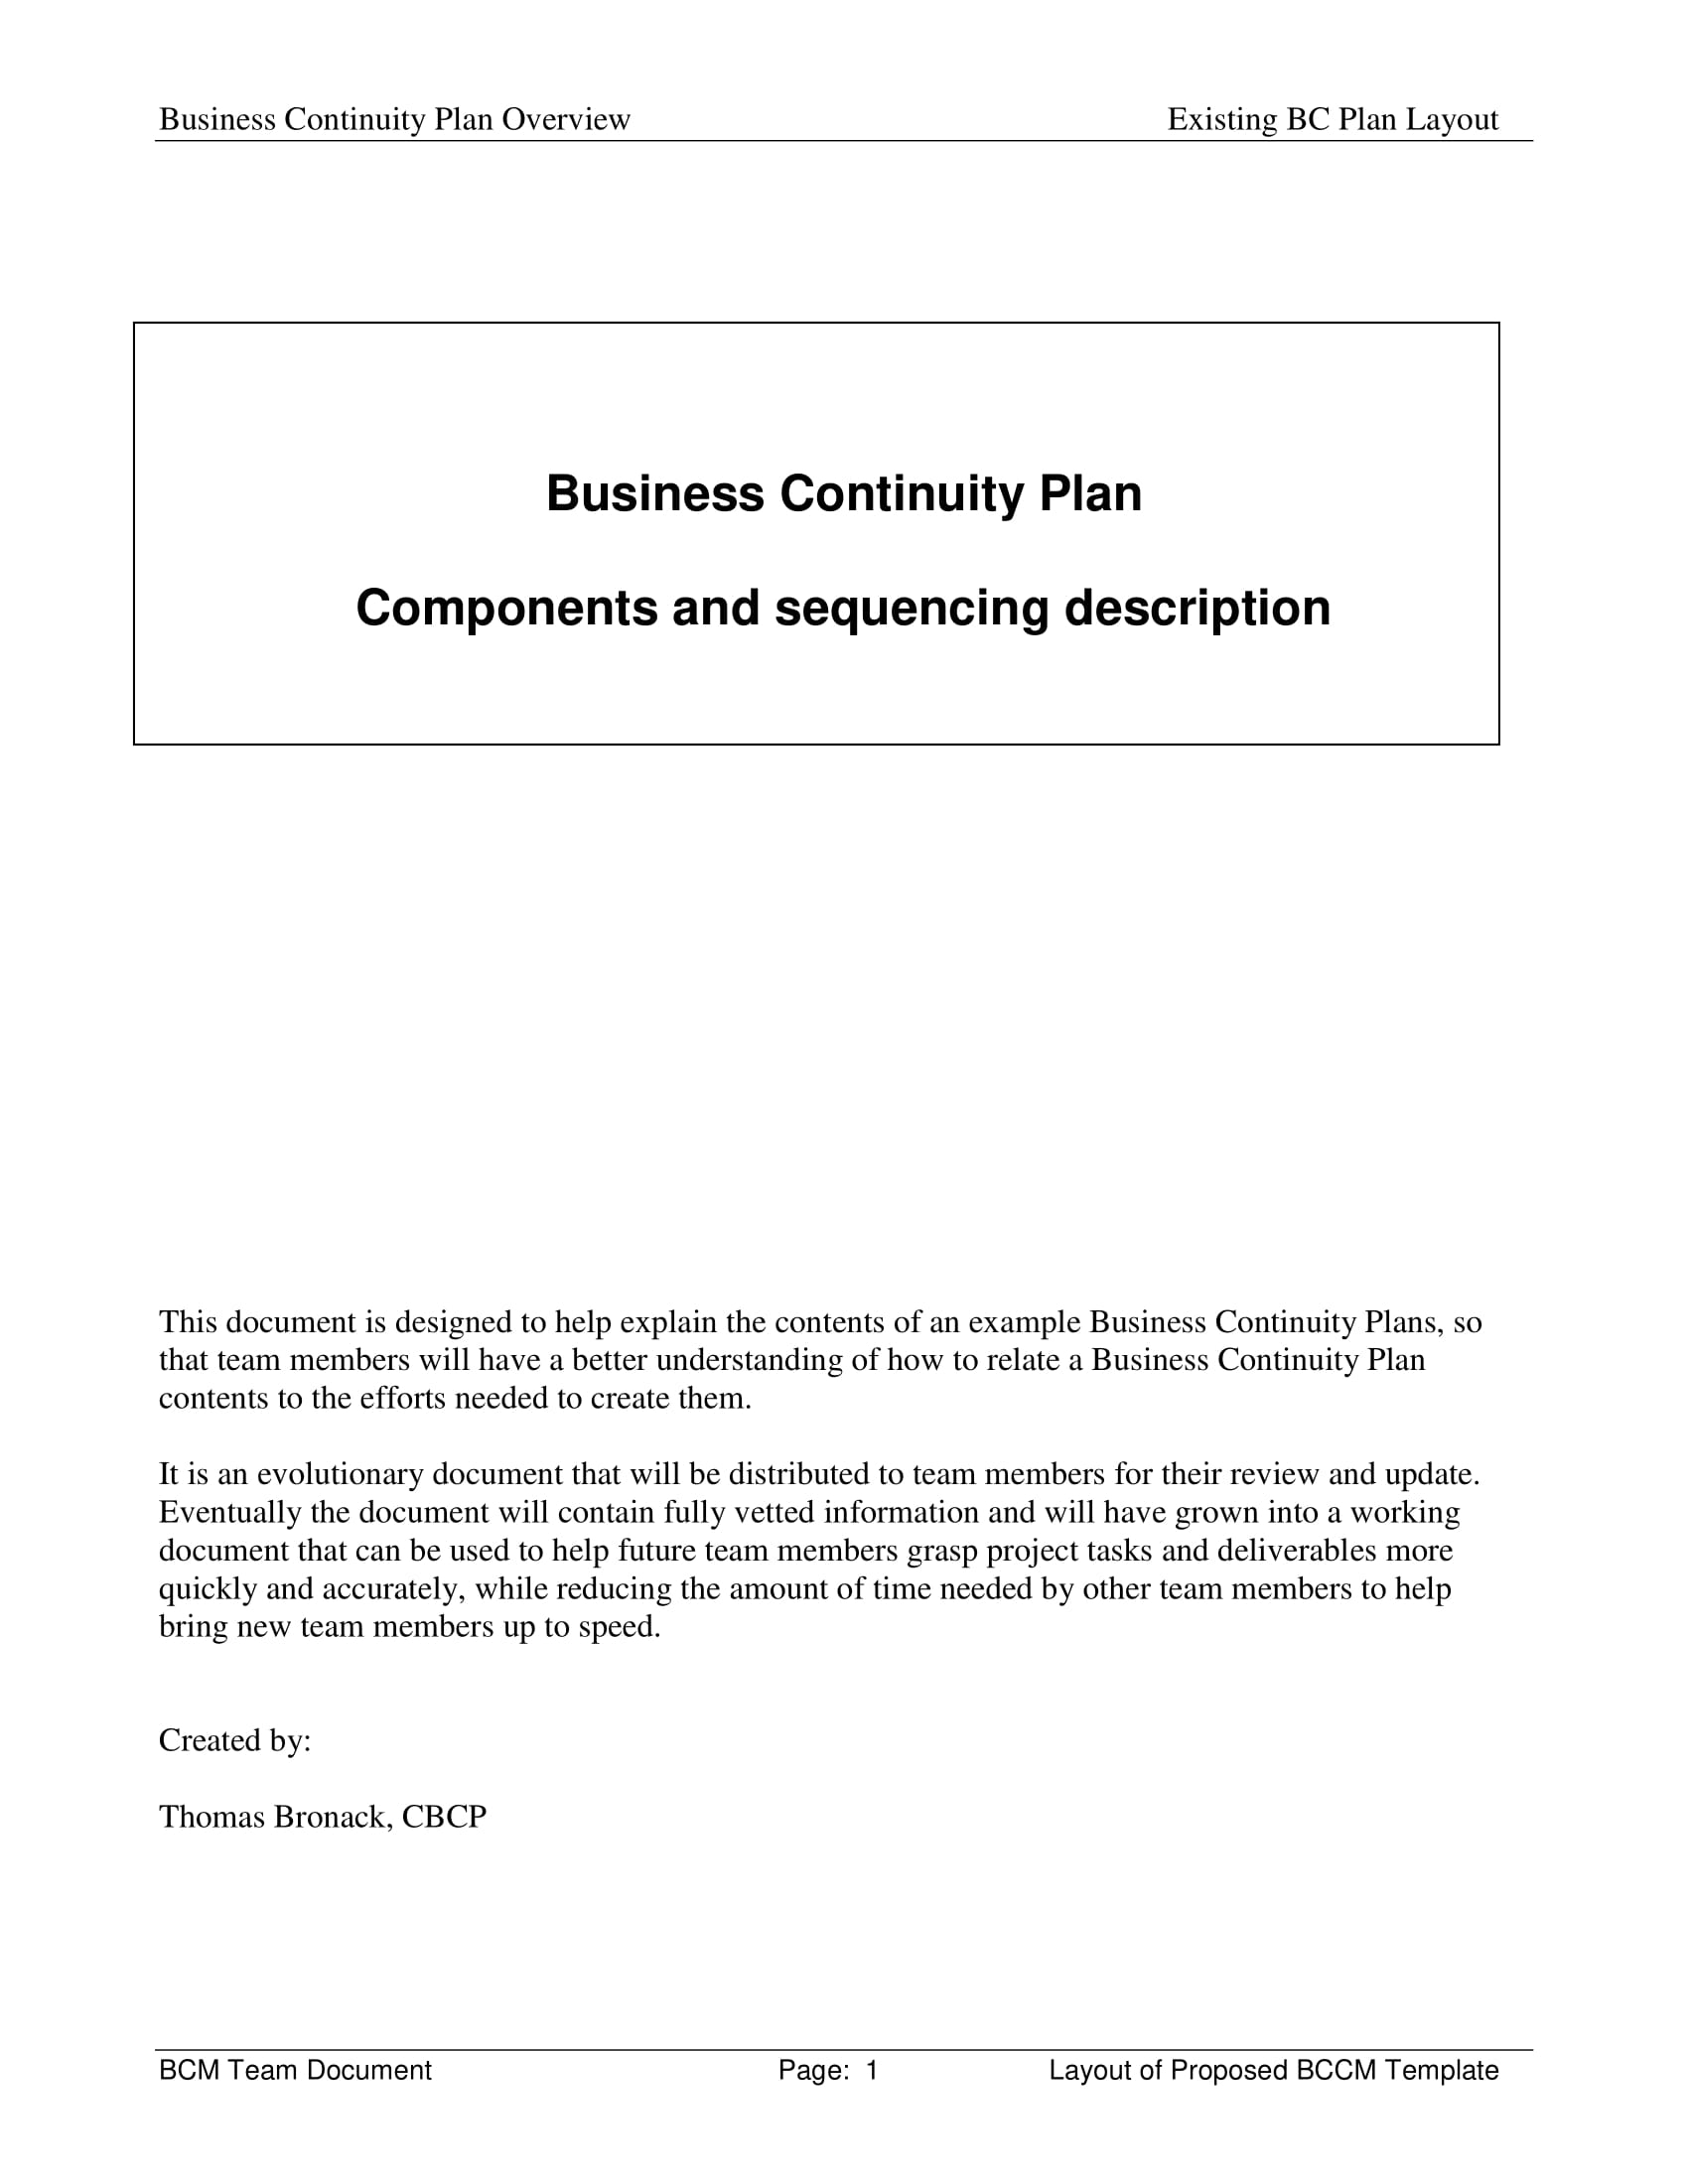 business continuity plan components and sequencing description example 01